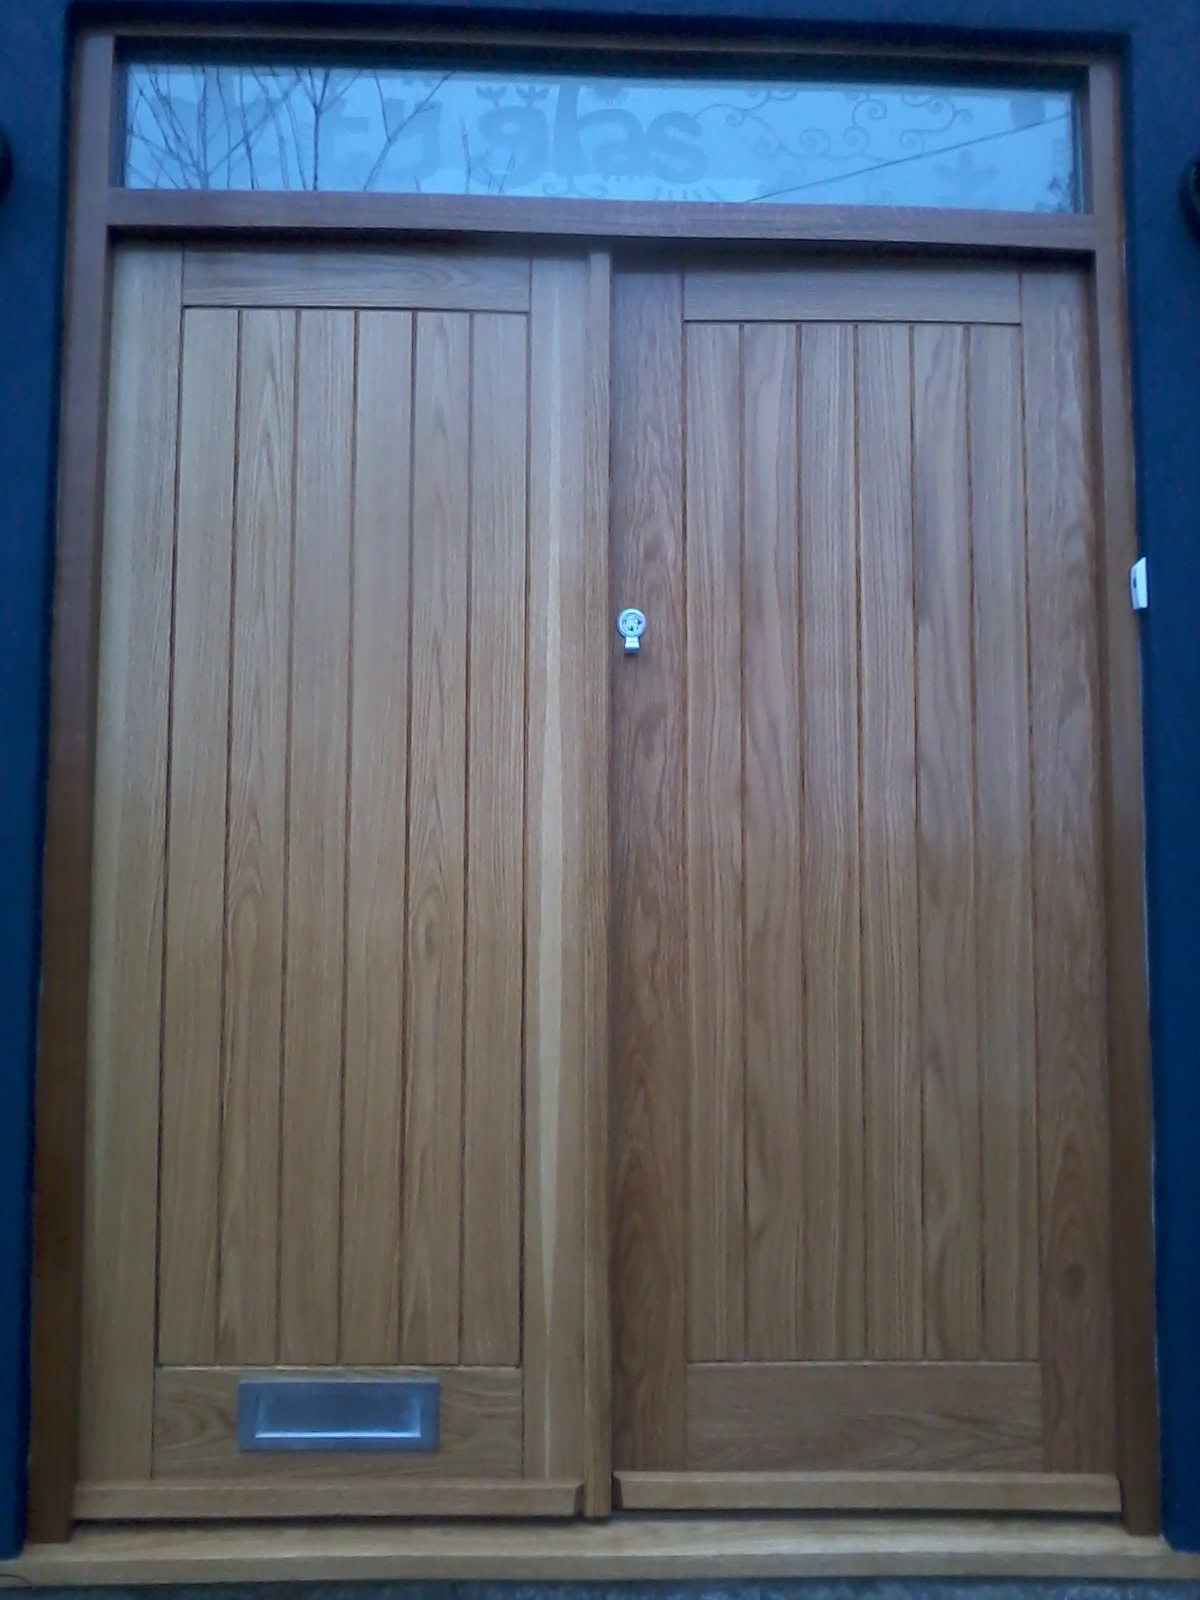 1600 #0F6DBC Bespoke Oak Double Front Doors Bartlett Joinery And Carpentry pic Oak Front Doors 42011200